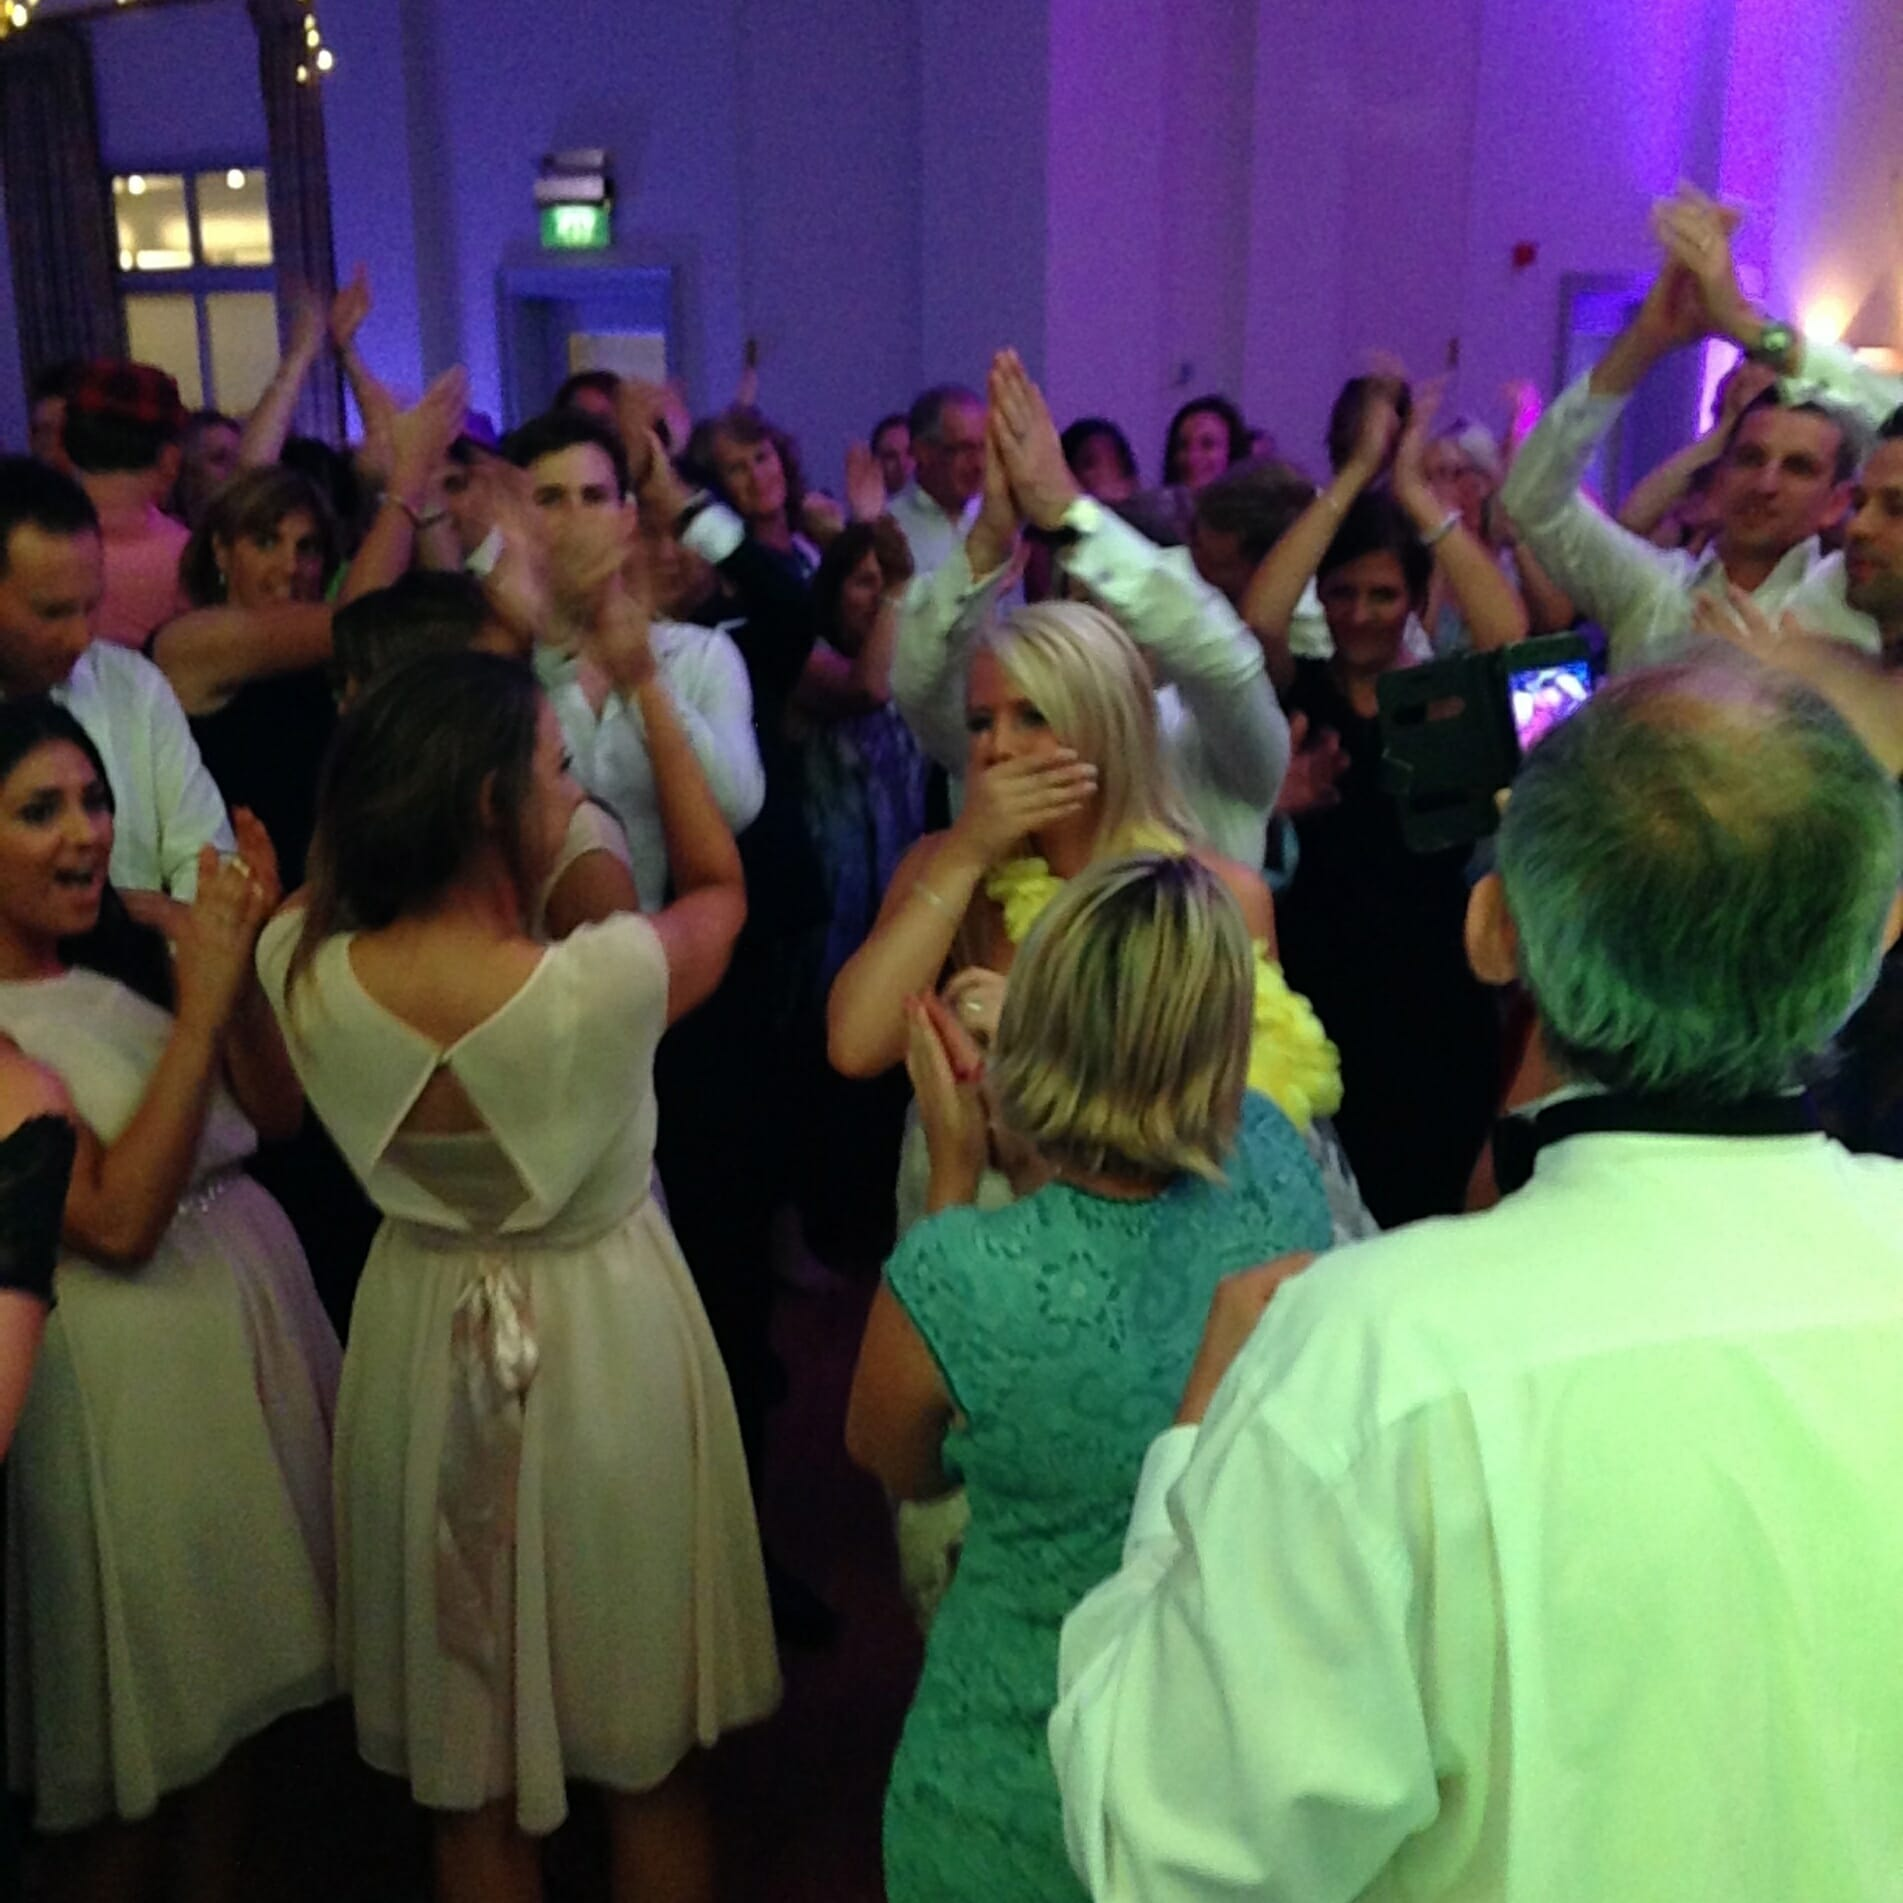 The Zoots perform at Libby & Simon Snook's wedding, Bowood House, August 2014. Bowood House, Wiltshire, The Zoots band, Bristol, South West, The Zoots wedding band, Wedding bands in Wiltshire, Wedding band in Dorset, Wedding bands in The South West, Party Band, 60s band, 1960s band, Wedding music, Band for NYE, bands in Wiltshire, Party Band South West, New Years Eve Band, Band for my Party 1960s band, 60s tribute, Band in Bristol